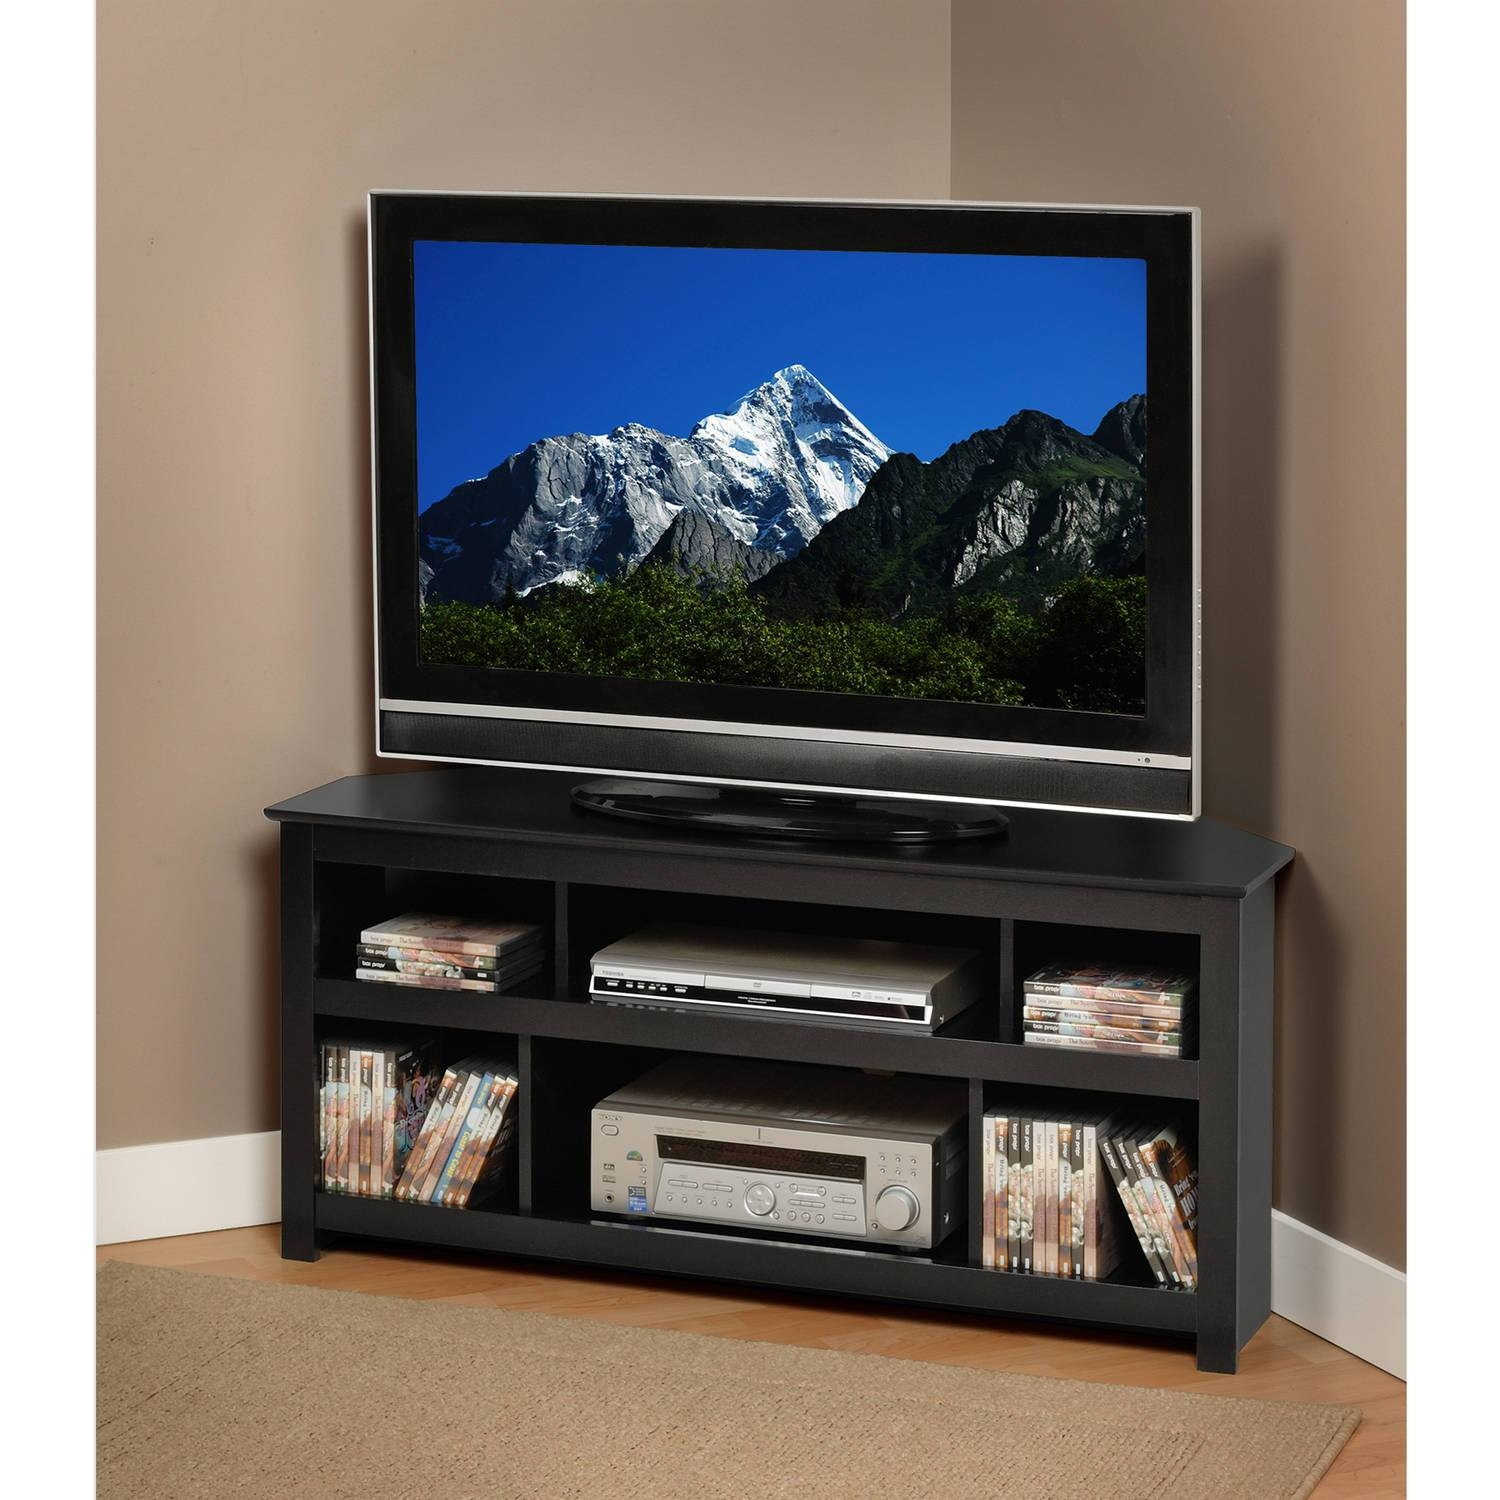 "Wood Corner Tv Fireplace Tv Stand For Tvs Up To 52"", Multiple For Tv Stands For Corner (View 11 of 15)"